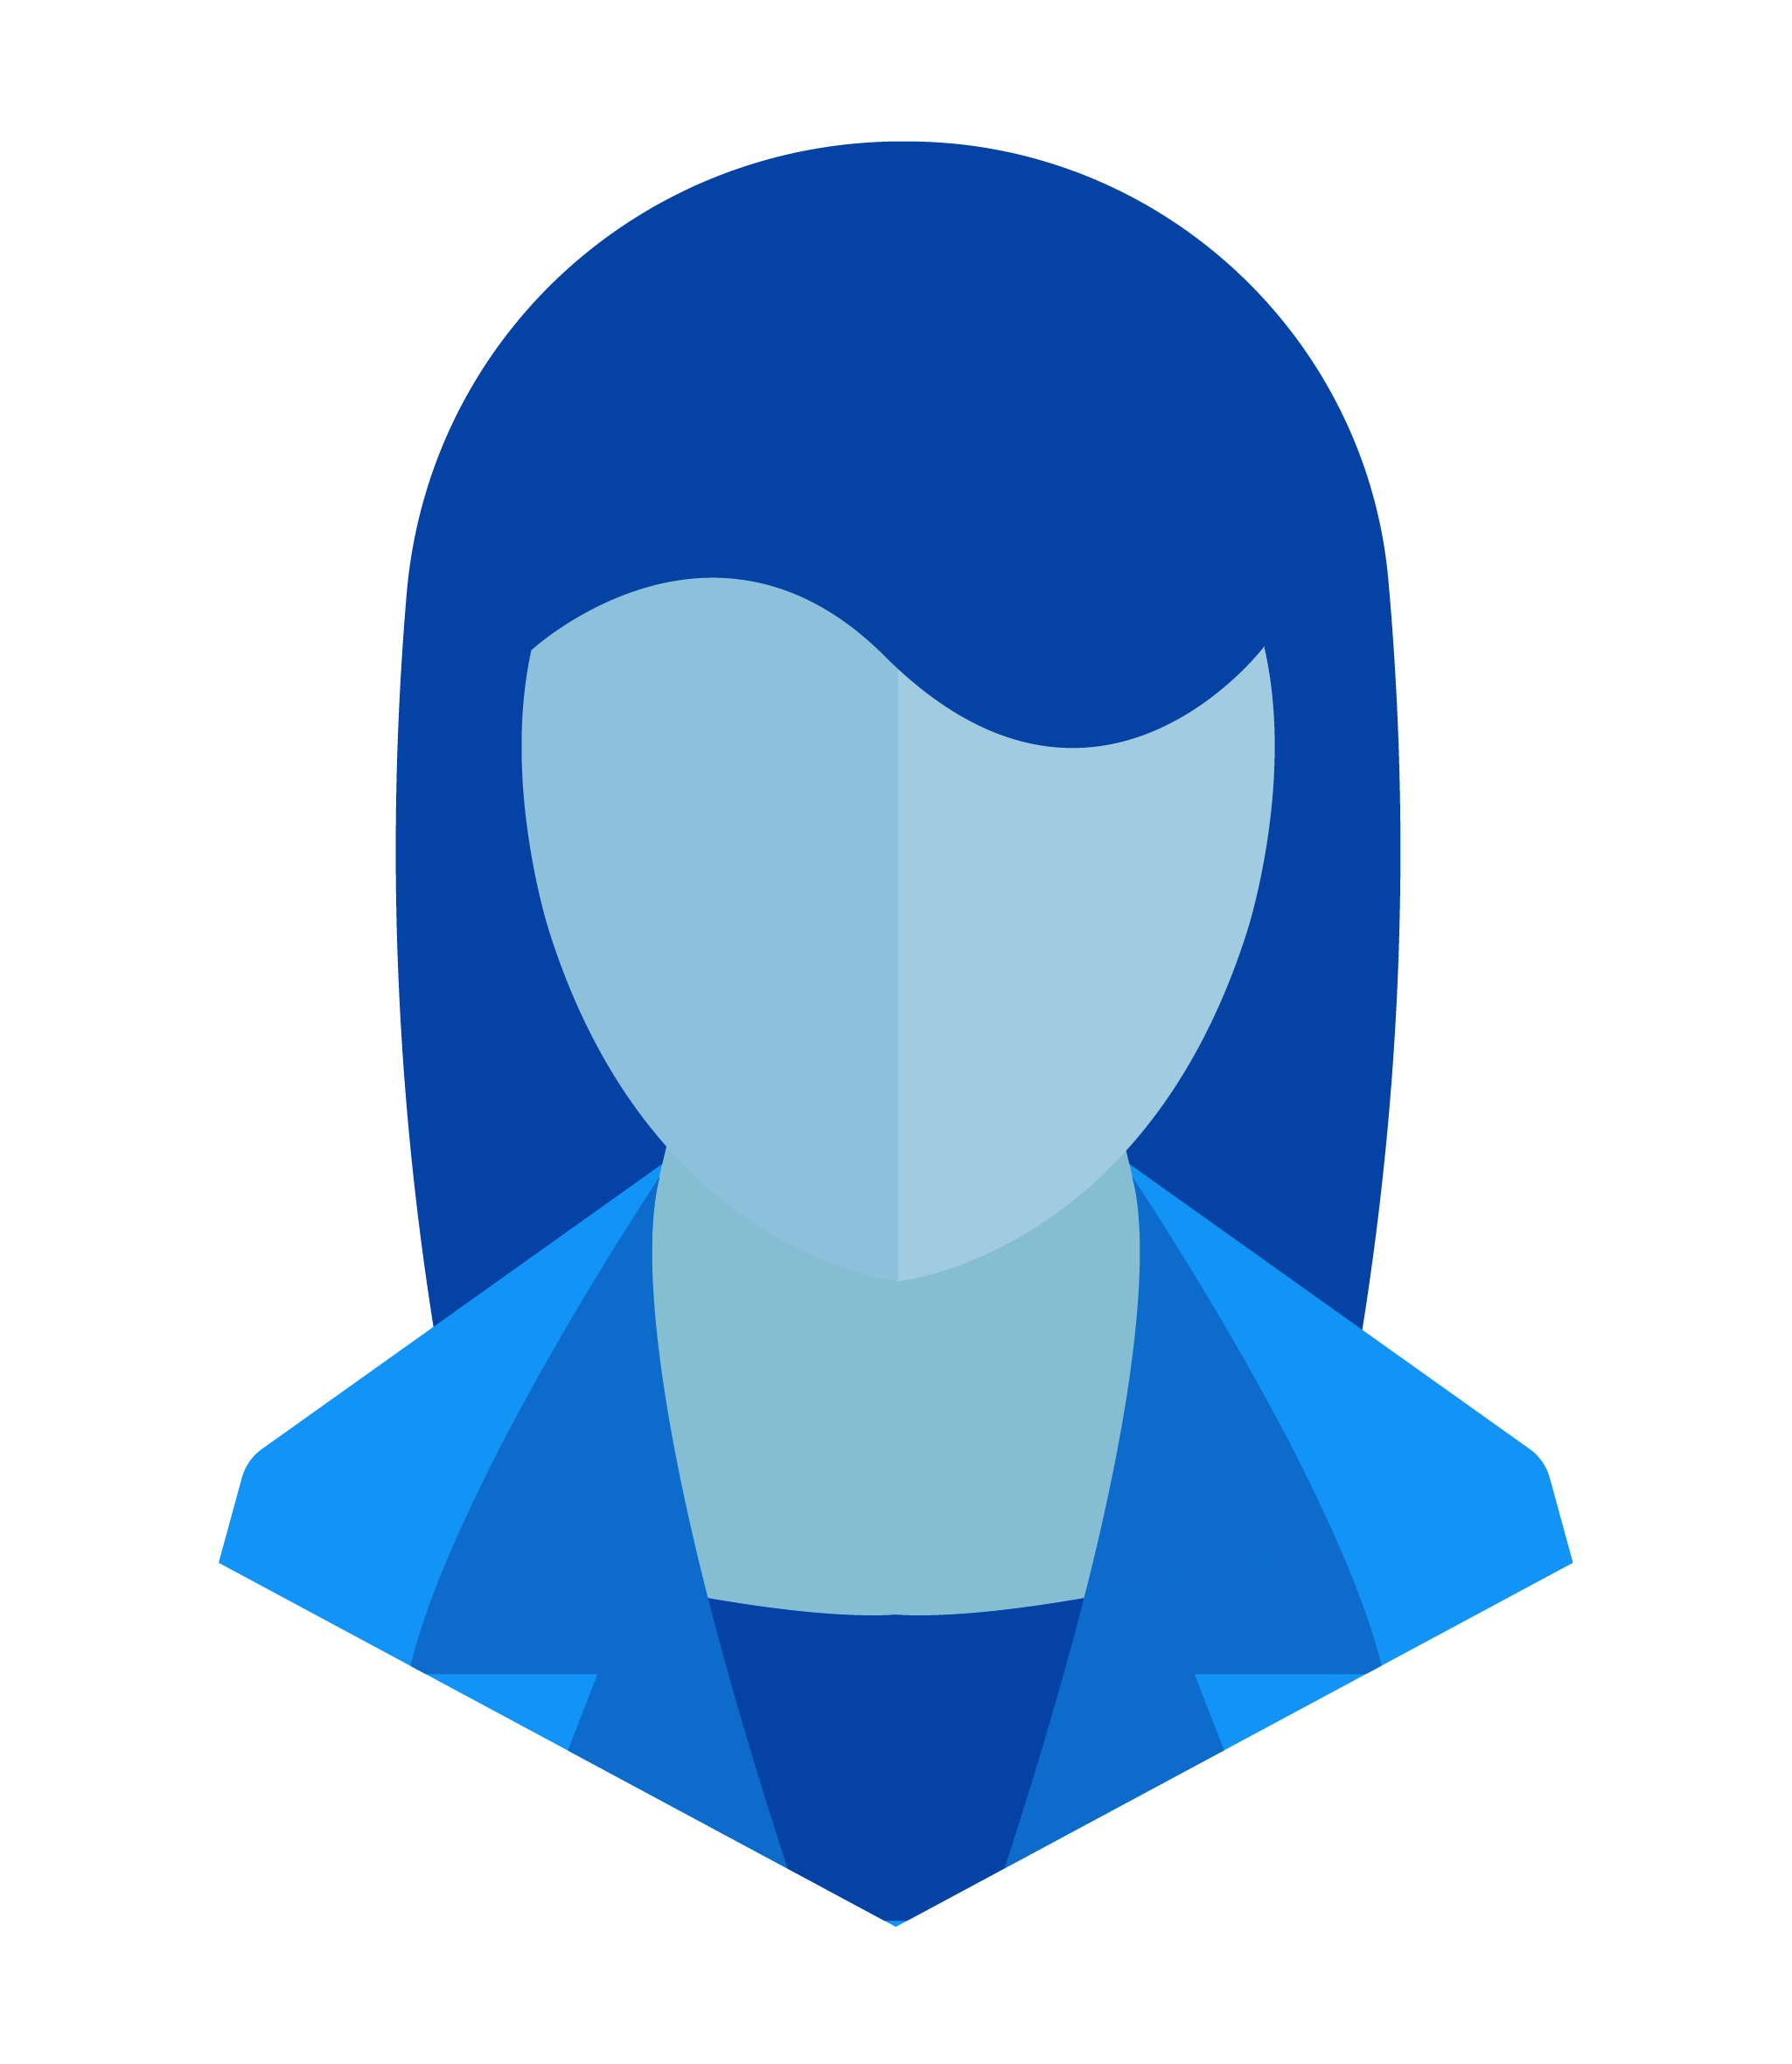 icon-manager